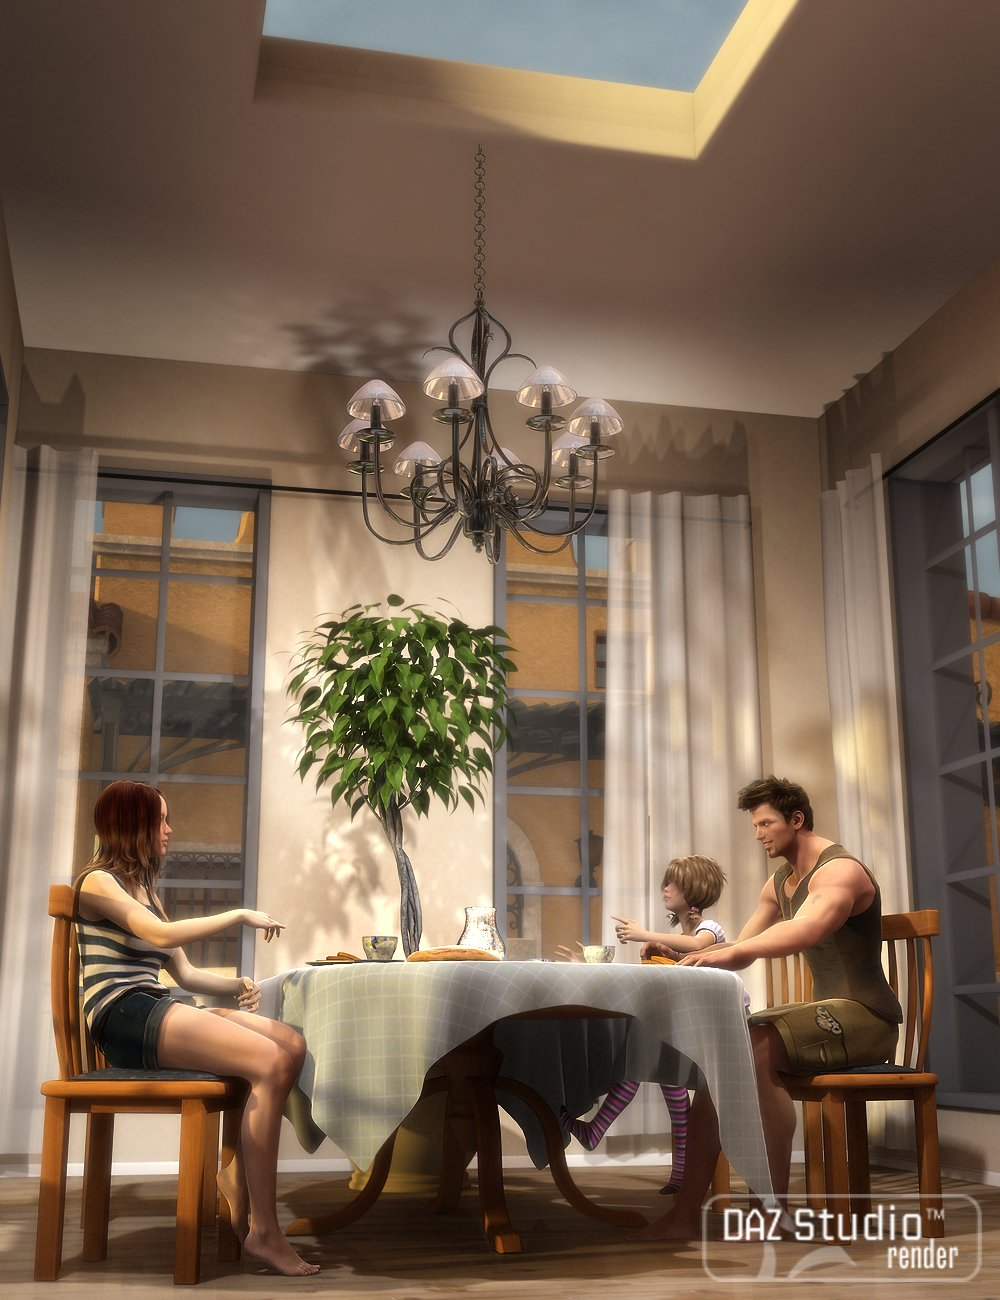 Country Dining Room by: , 3D Models by Daz 3D